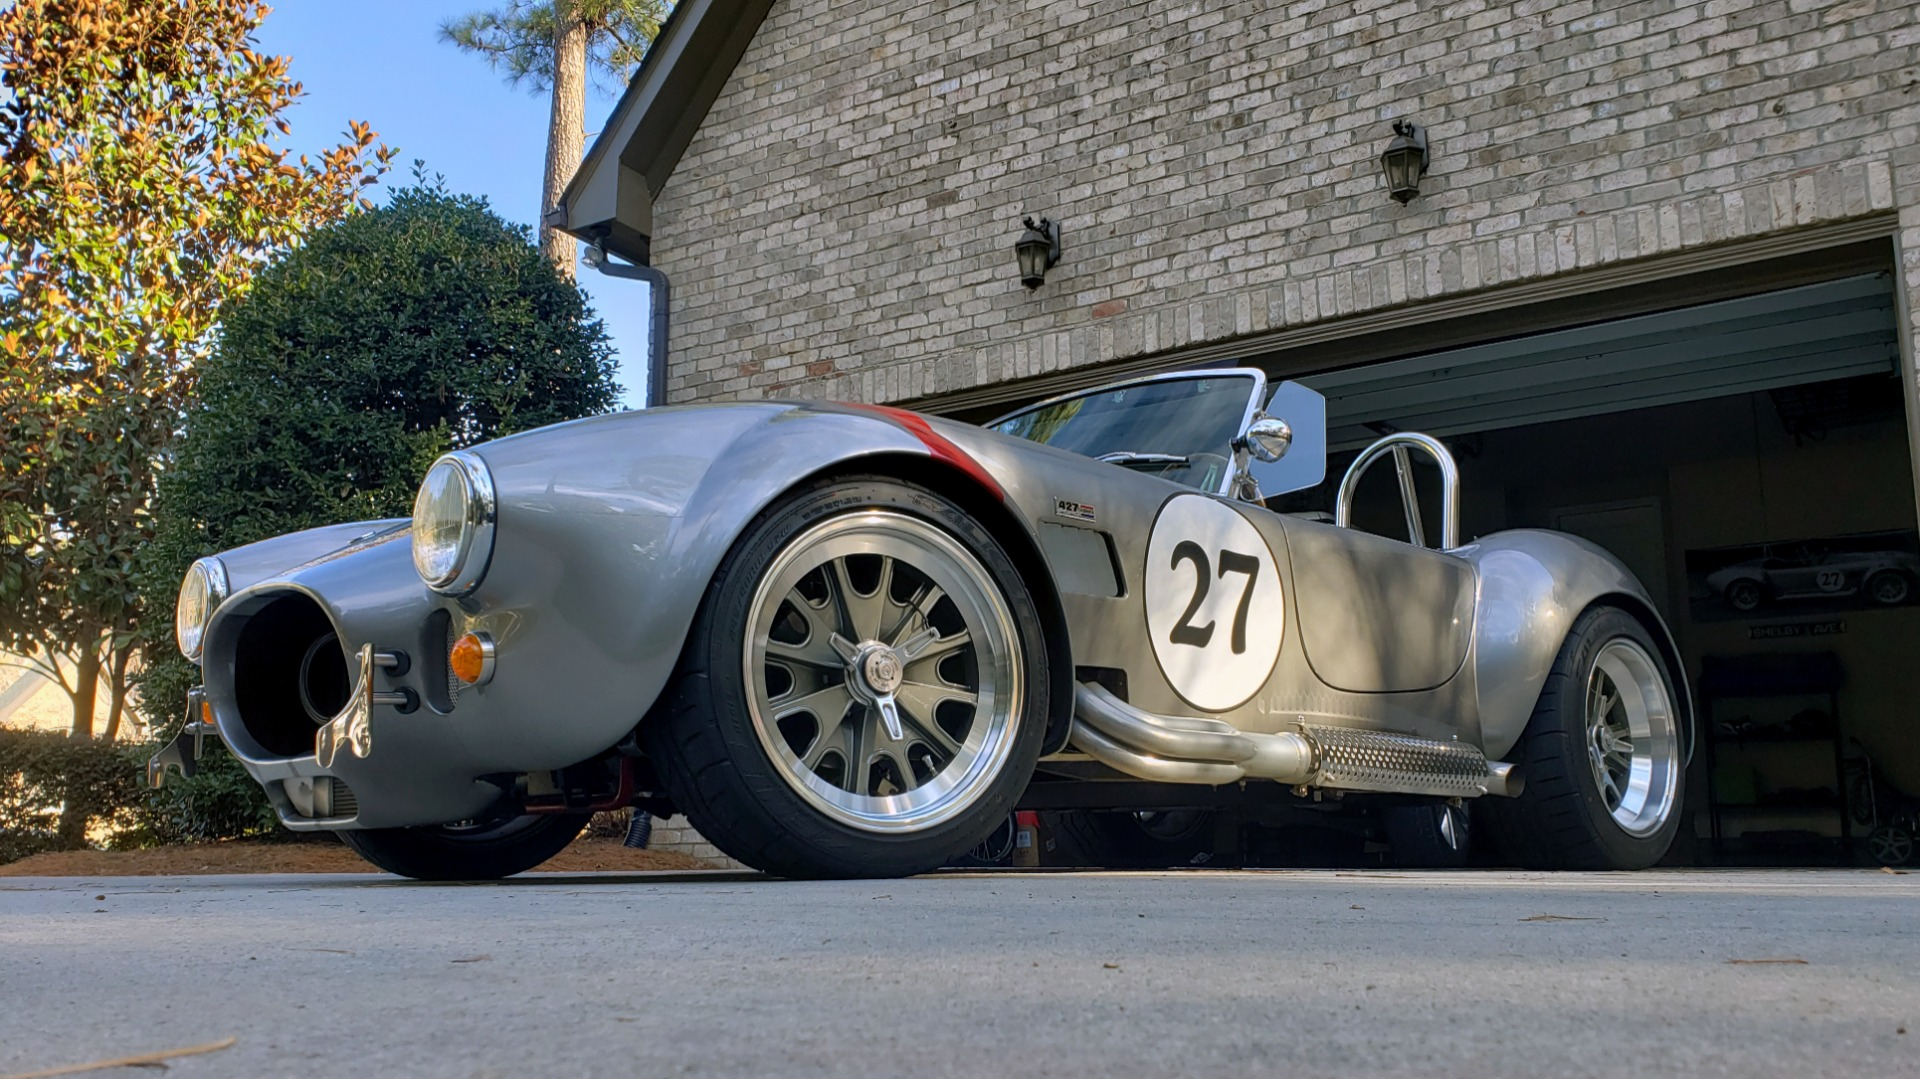 Used 1965 Ford COBRA 427 ROADSTER BY BACKDRAFT RACING ROUSH 553HP V8 / TREMEC 6-SPD / PWR STRNG for sale $74,999 at Formula Imports in Charlotte NC 28227 10